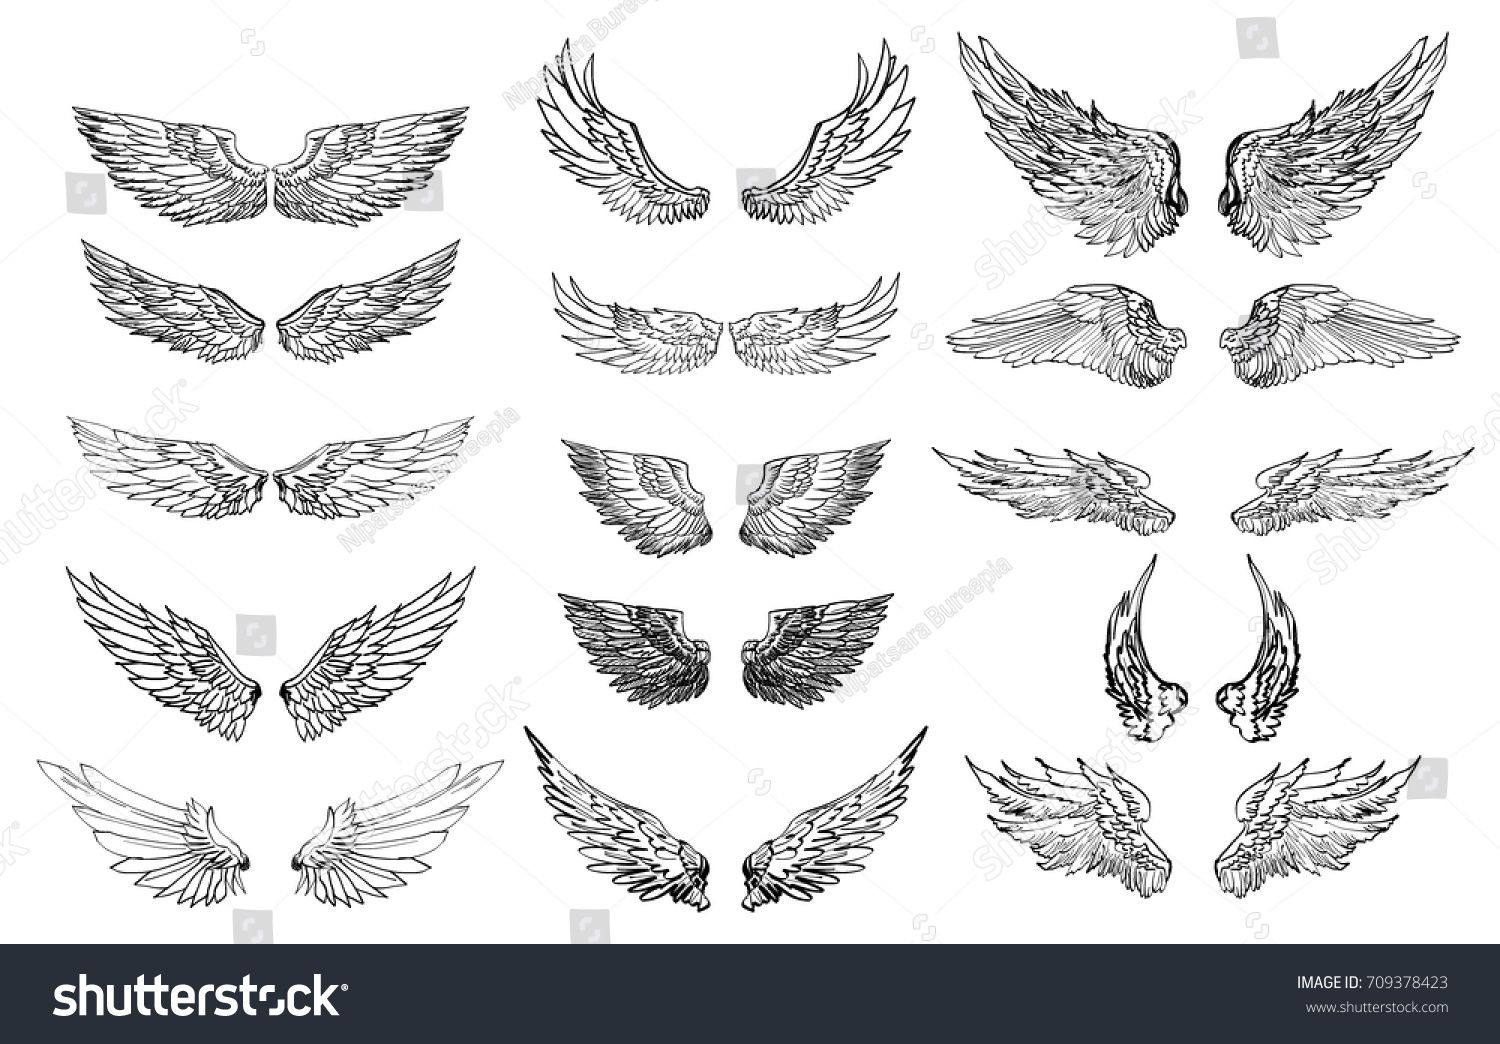 Hand Drawn Wing Set Sticker Wing Tattoo Doodle And Sketch Style